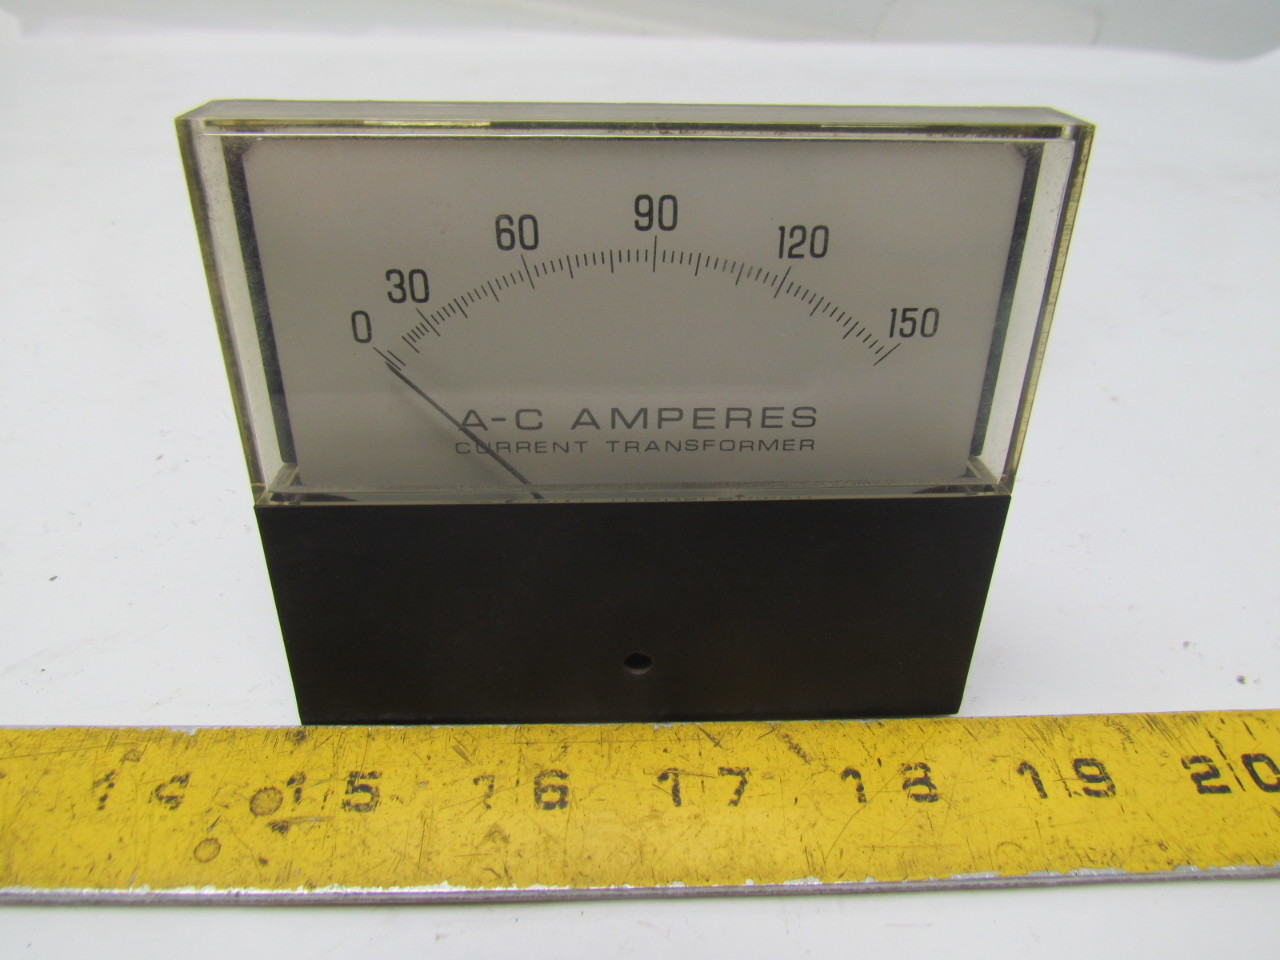 Small Amp Meter : Eil instruments yew a c amps small face amp meter ebay